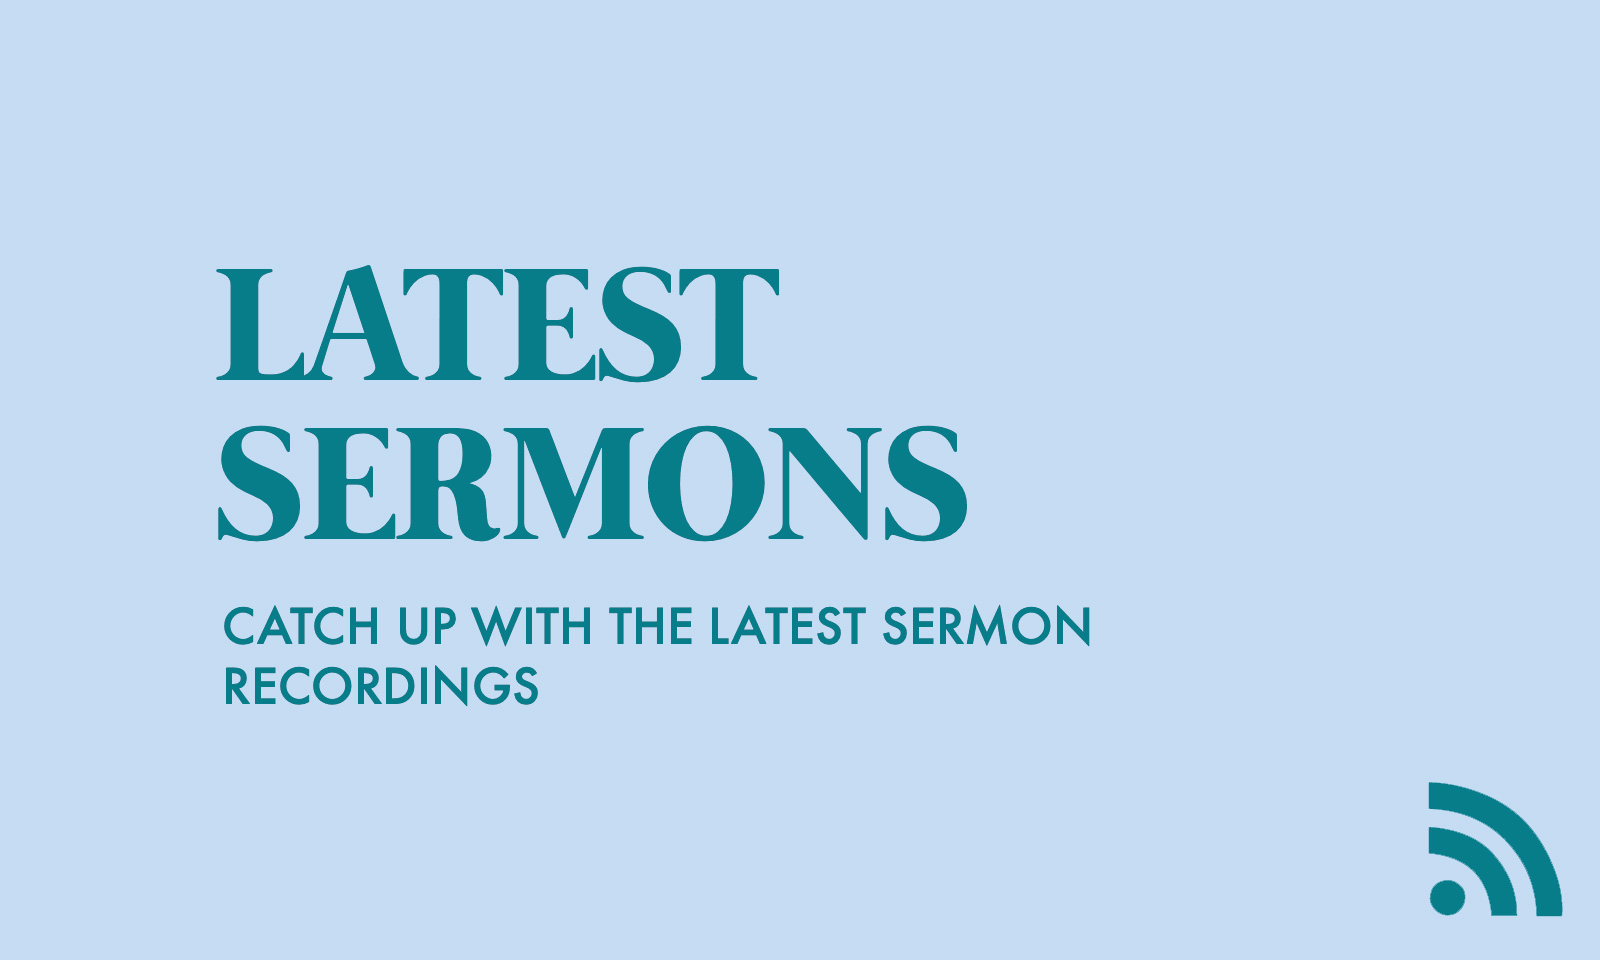 Latest-Sermons.jpg